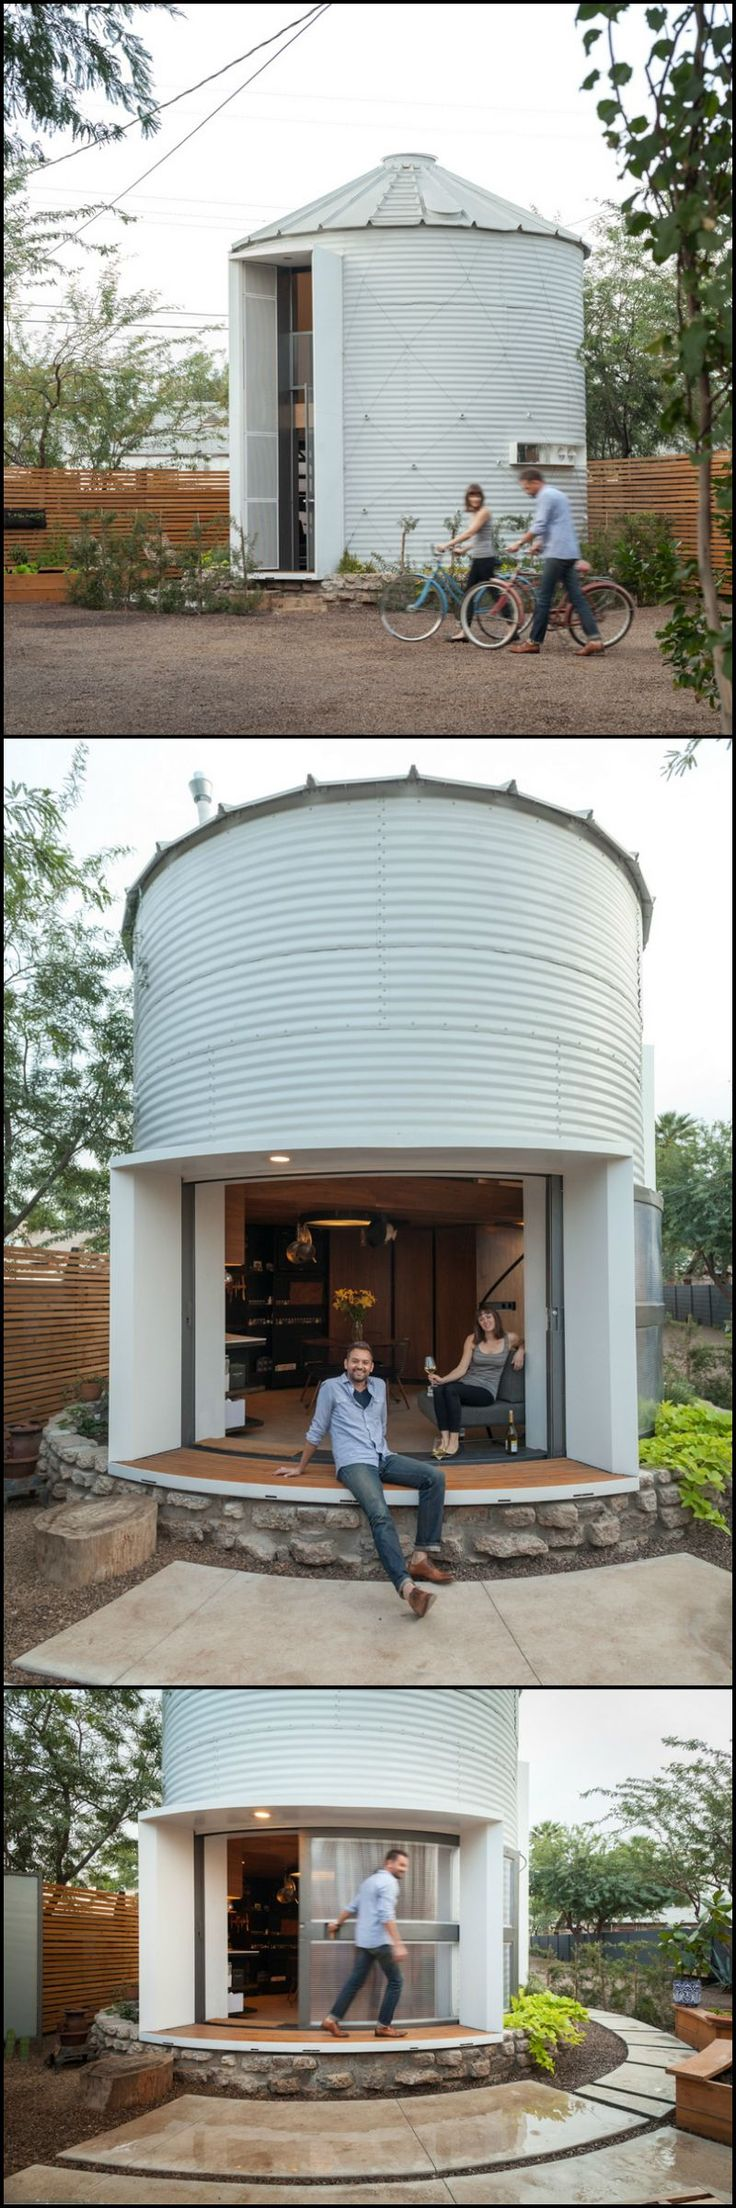 While driving though Kansas, architect Christoph Kaiser , noticed a dismantled, 1955 era grain silo. A short conversation with the farmer owner and the bits and pieces has a new owner, and soon, a new address. View the transformation of an abandoned grain silo to a comfortable home for two here: http://theownerbuildernetwork.co/xk6e The idea was to create a comfortable, affordable and sustainable home from a very compact space with the lowest possible carbon footprint!